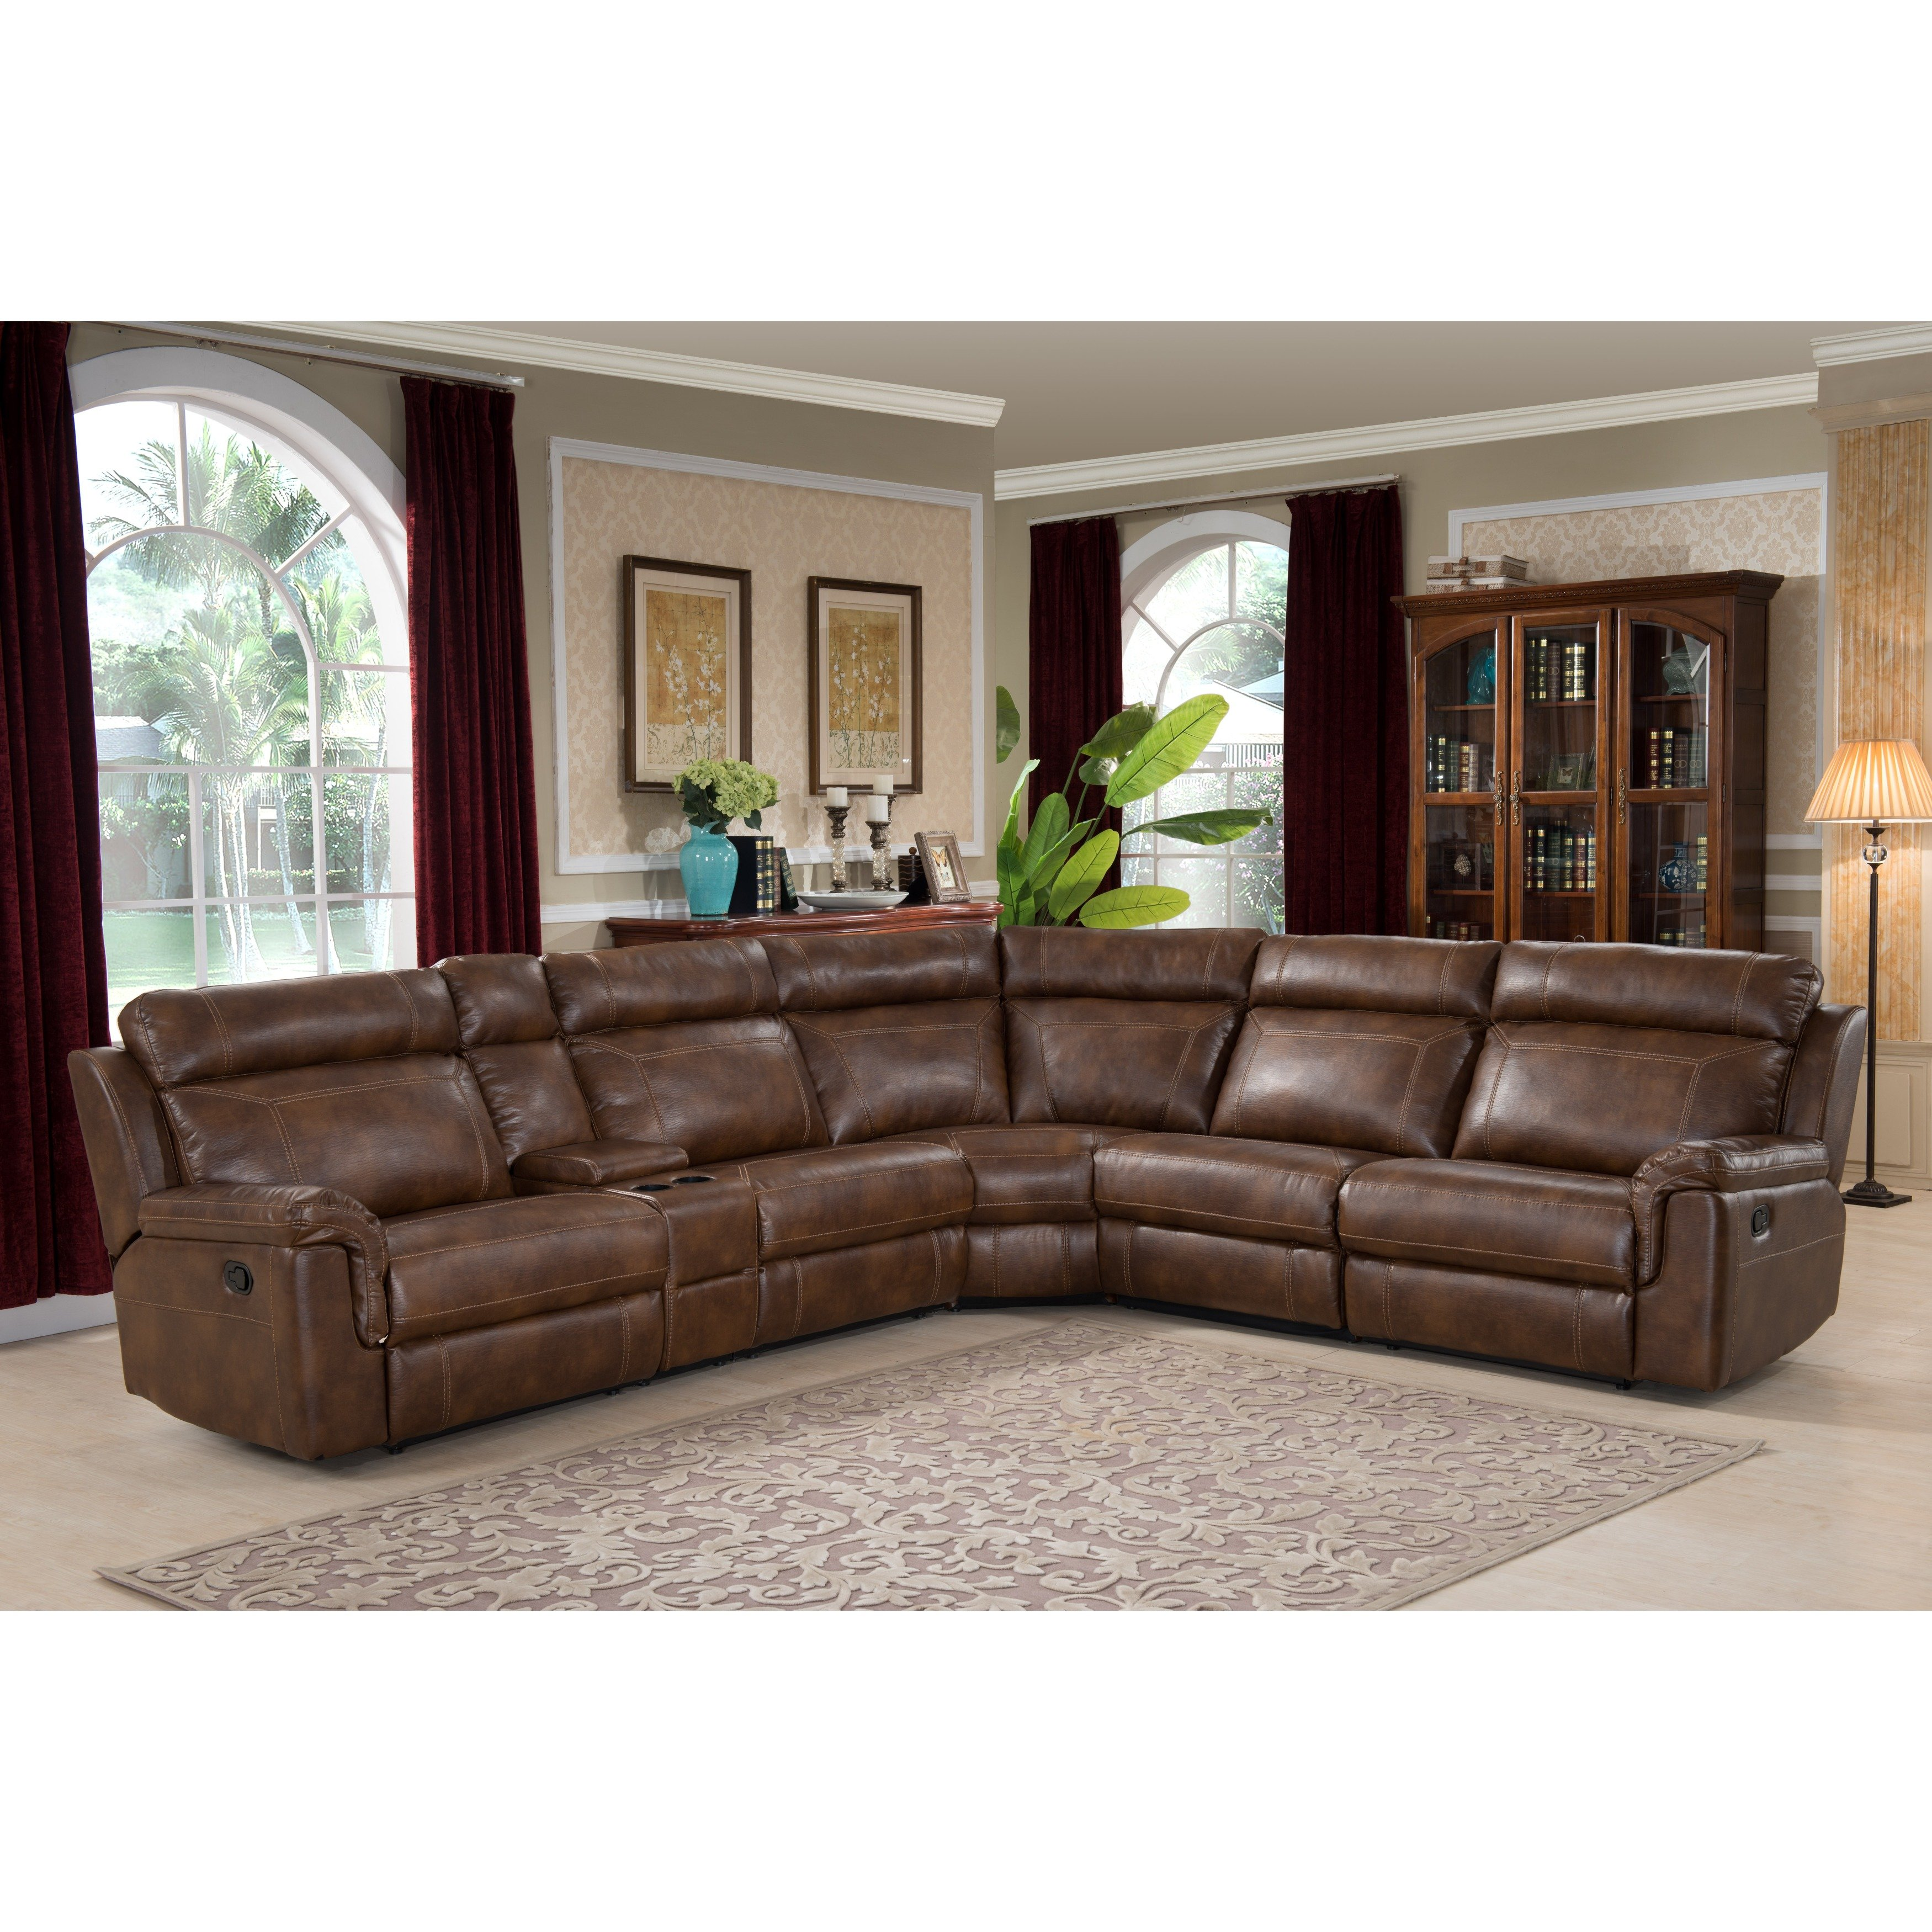 Nicole Reclining Brown Leather Sectional Sofa